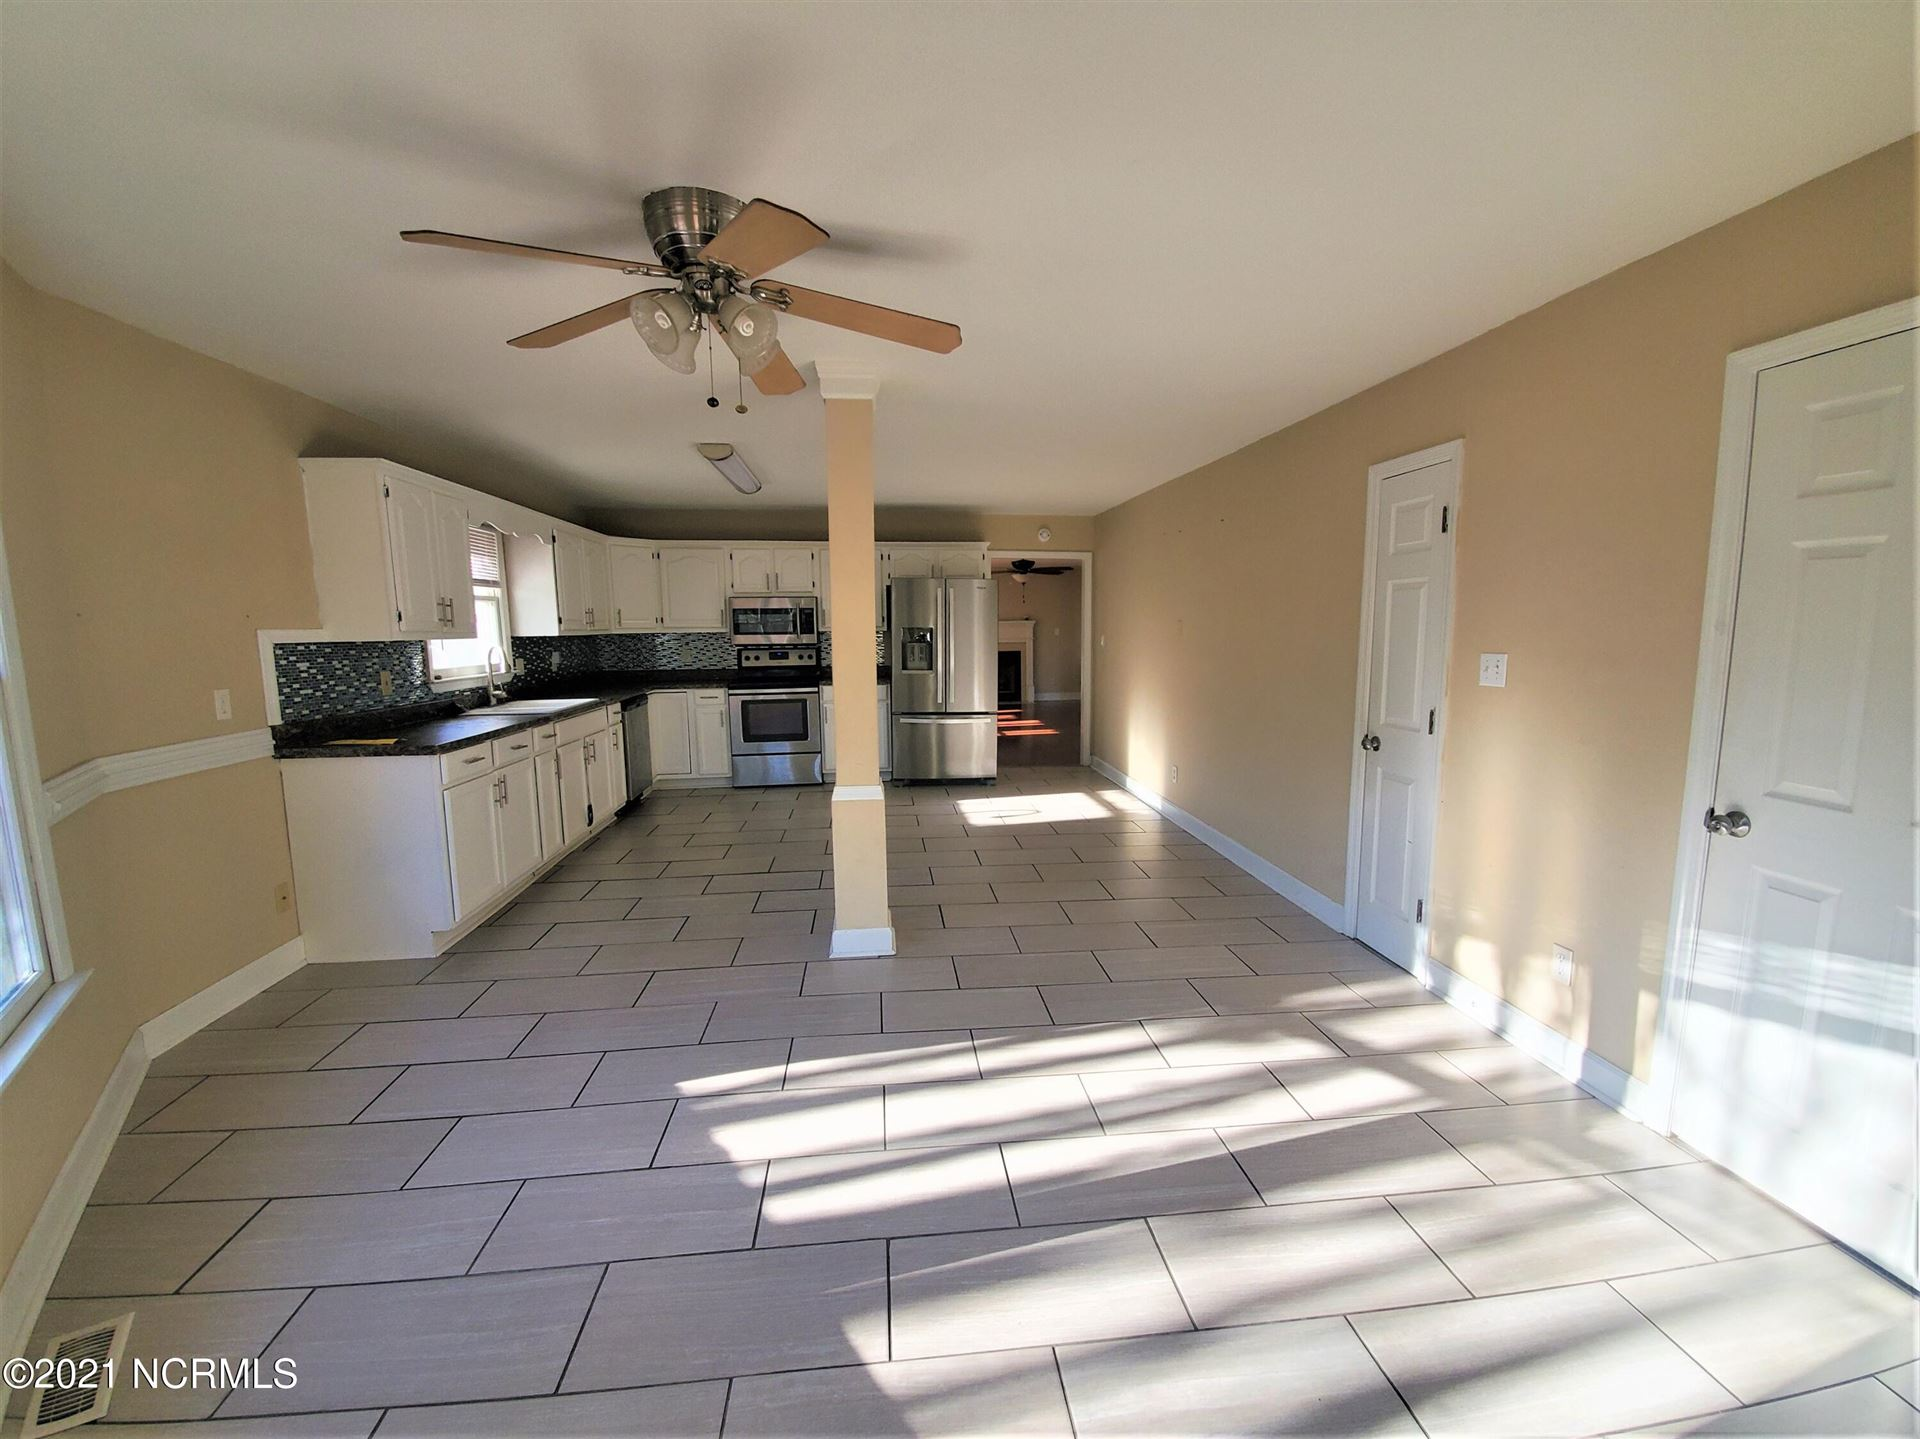 Photo of 402 Whirl Away Boulevard, Sneads Ferry, NC 28460 (MLS # 100295894)